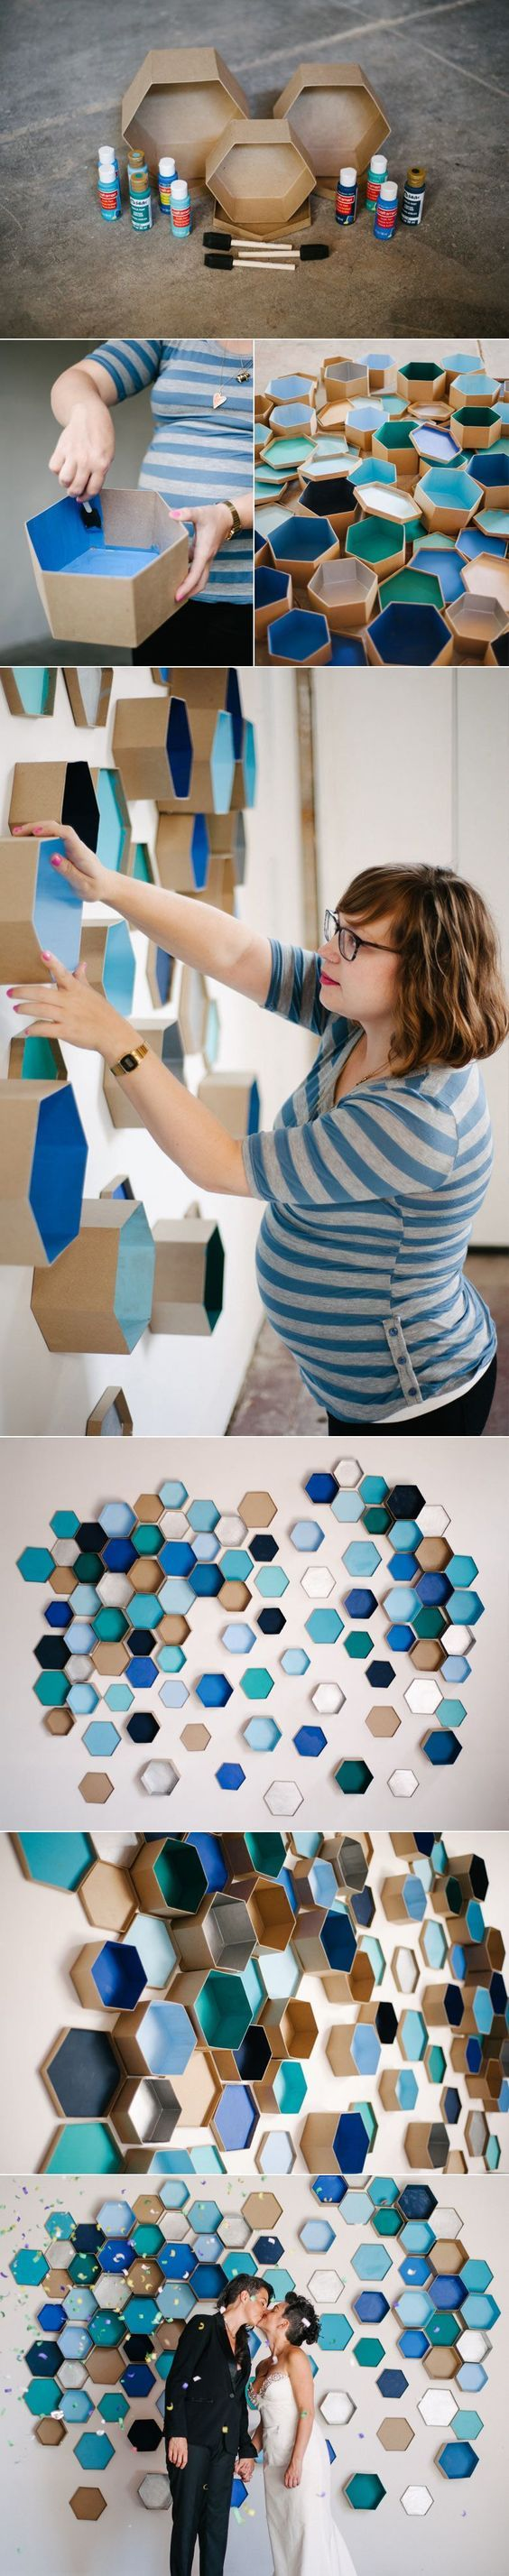 in order to boost your creativity I will share with you some DIY wall decor projects that will add liveliness to your walls.